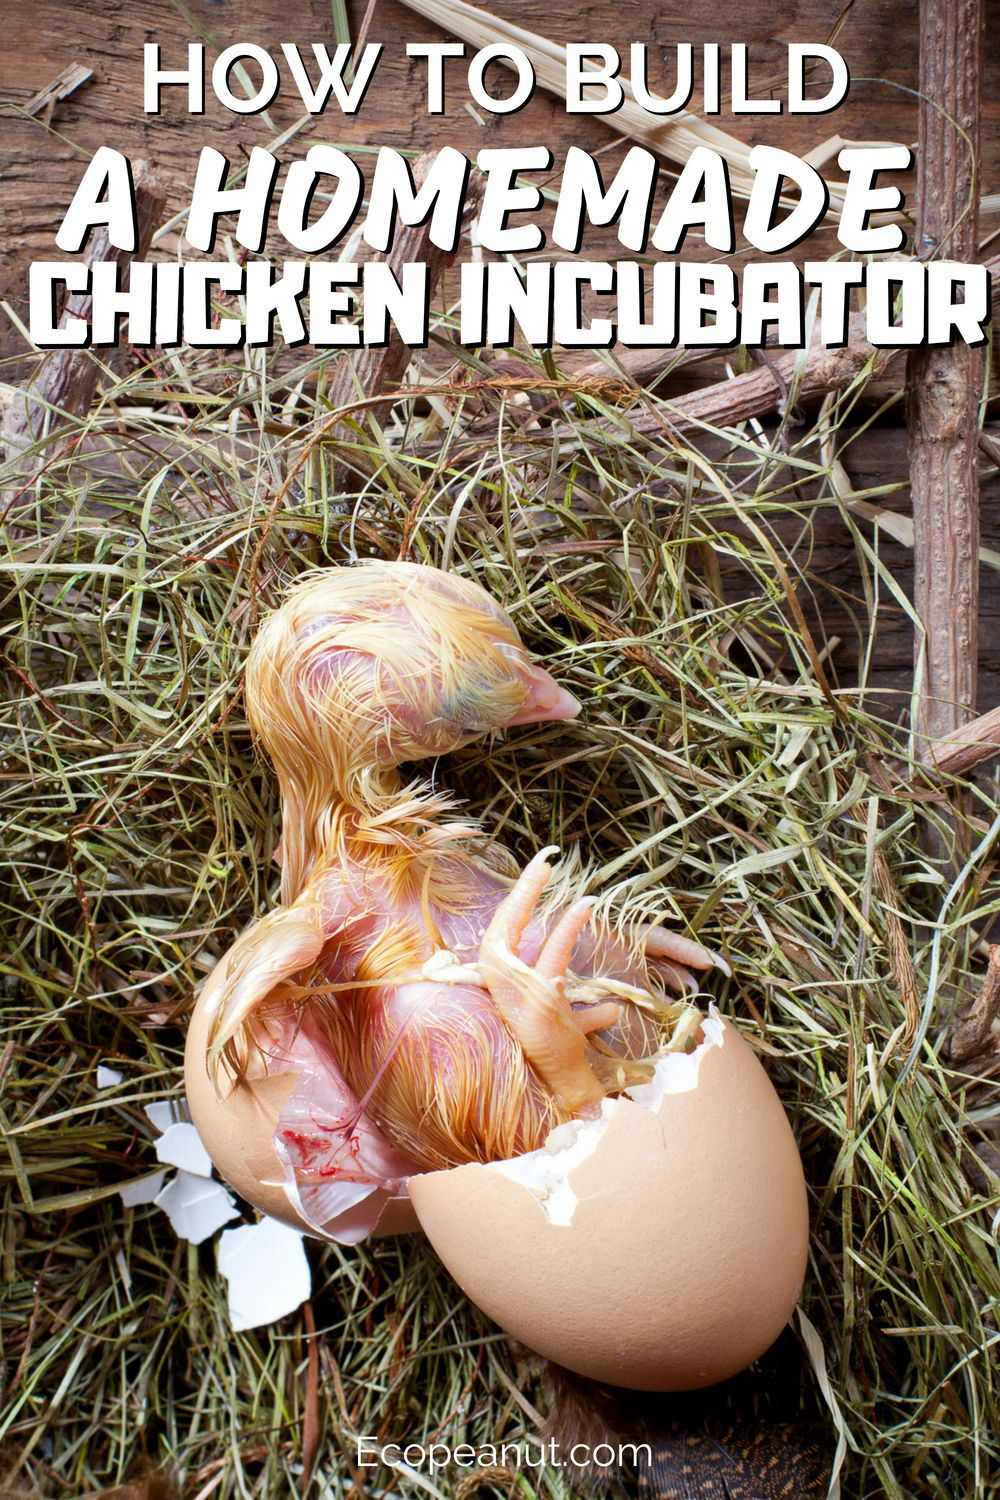 How to keep build your own diy chicken incubator in 6 easy